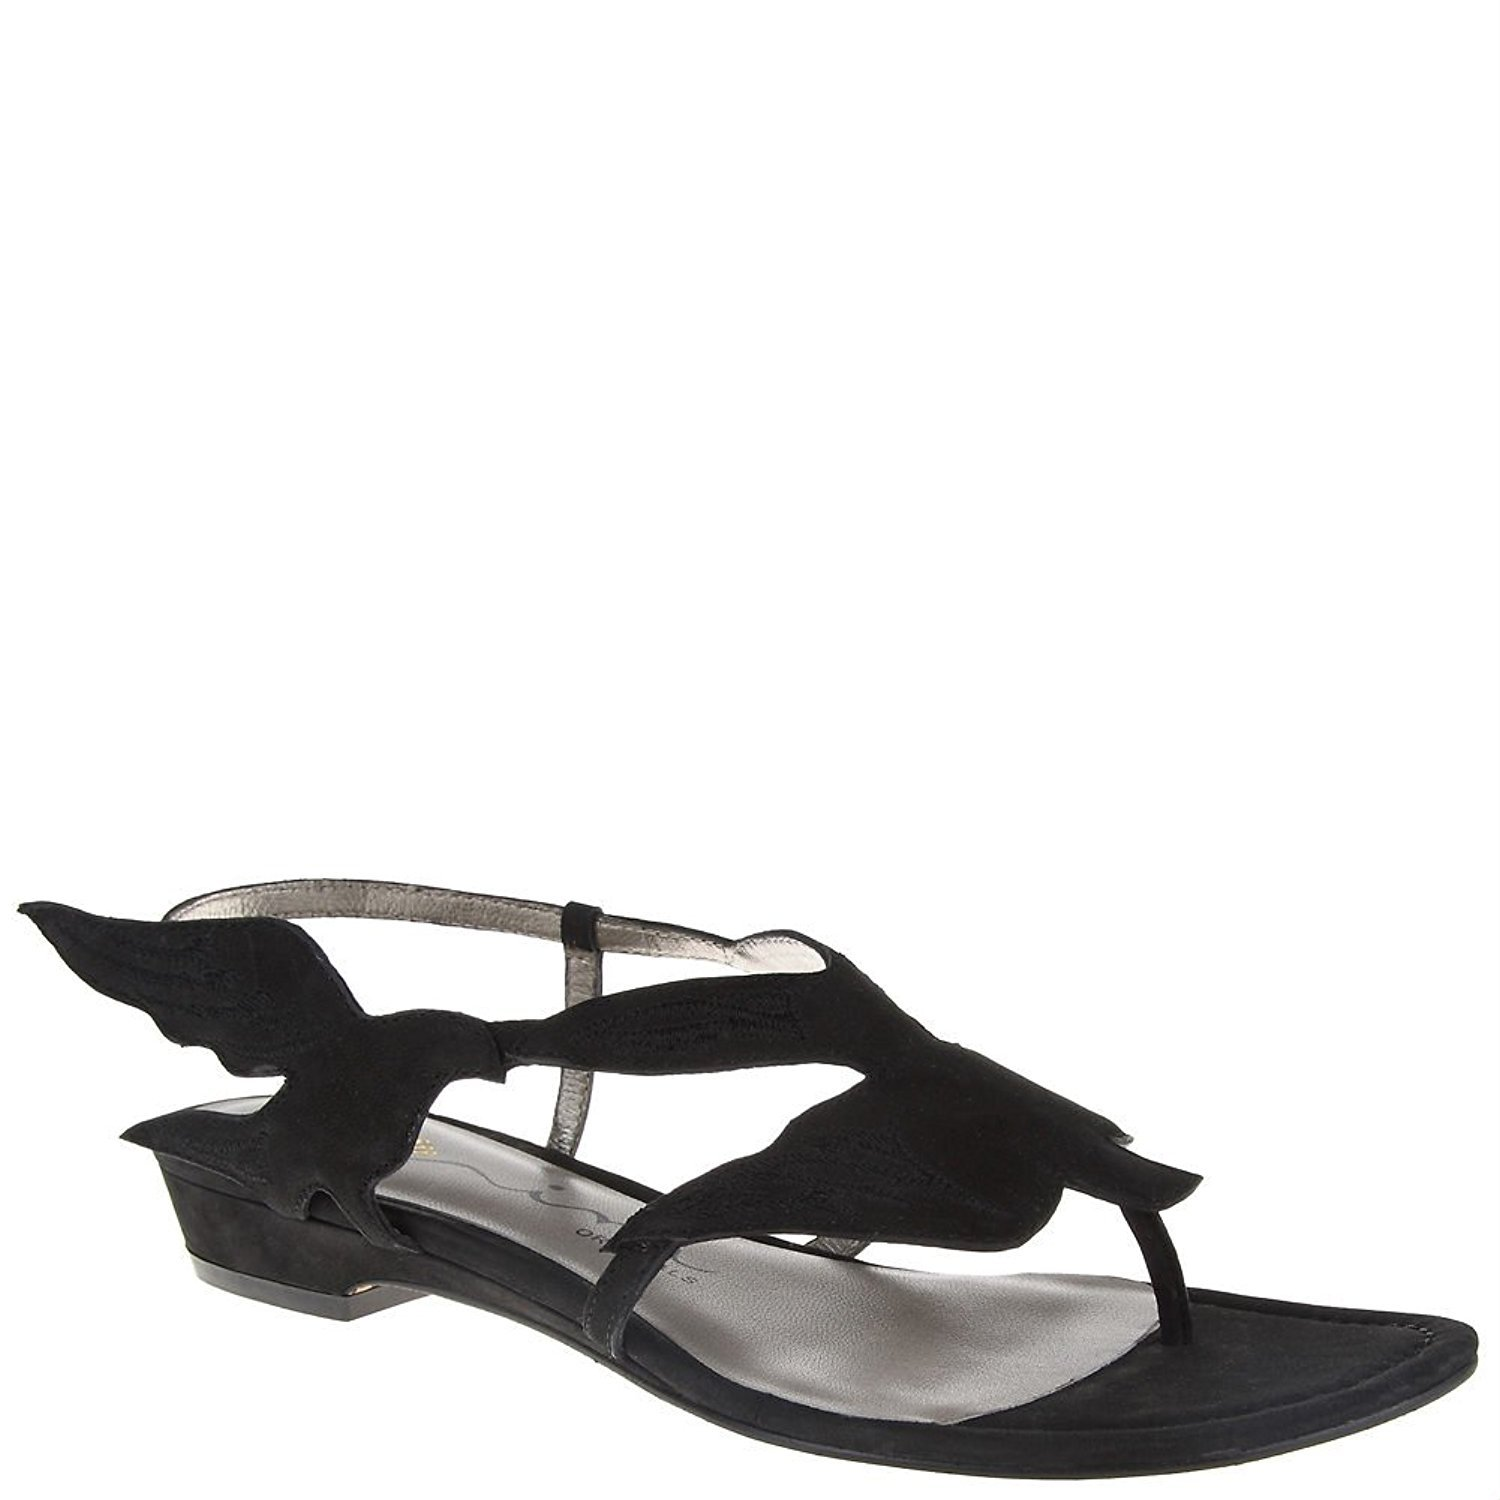 Nina Original Womens Krystl Dress Sandal Black nubuck Size 85